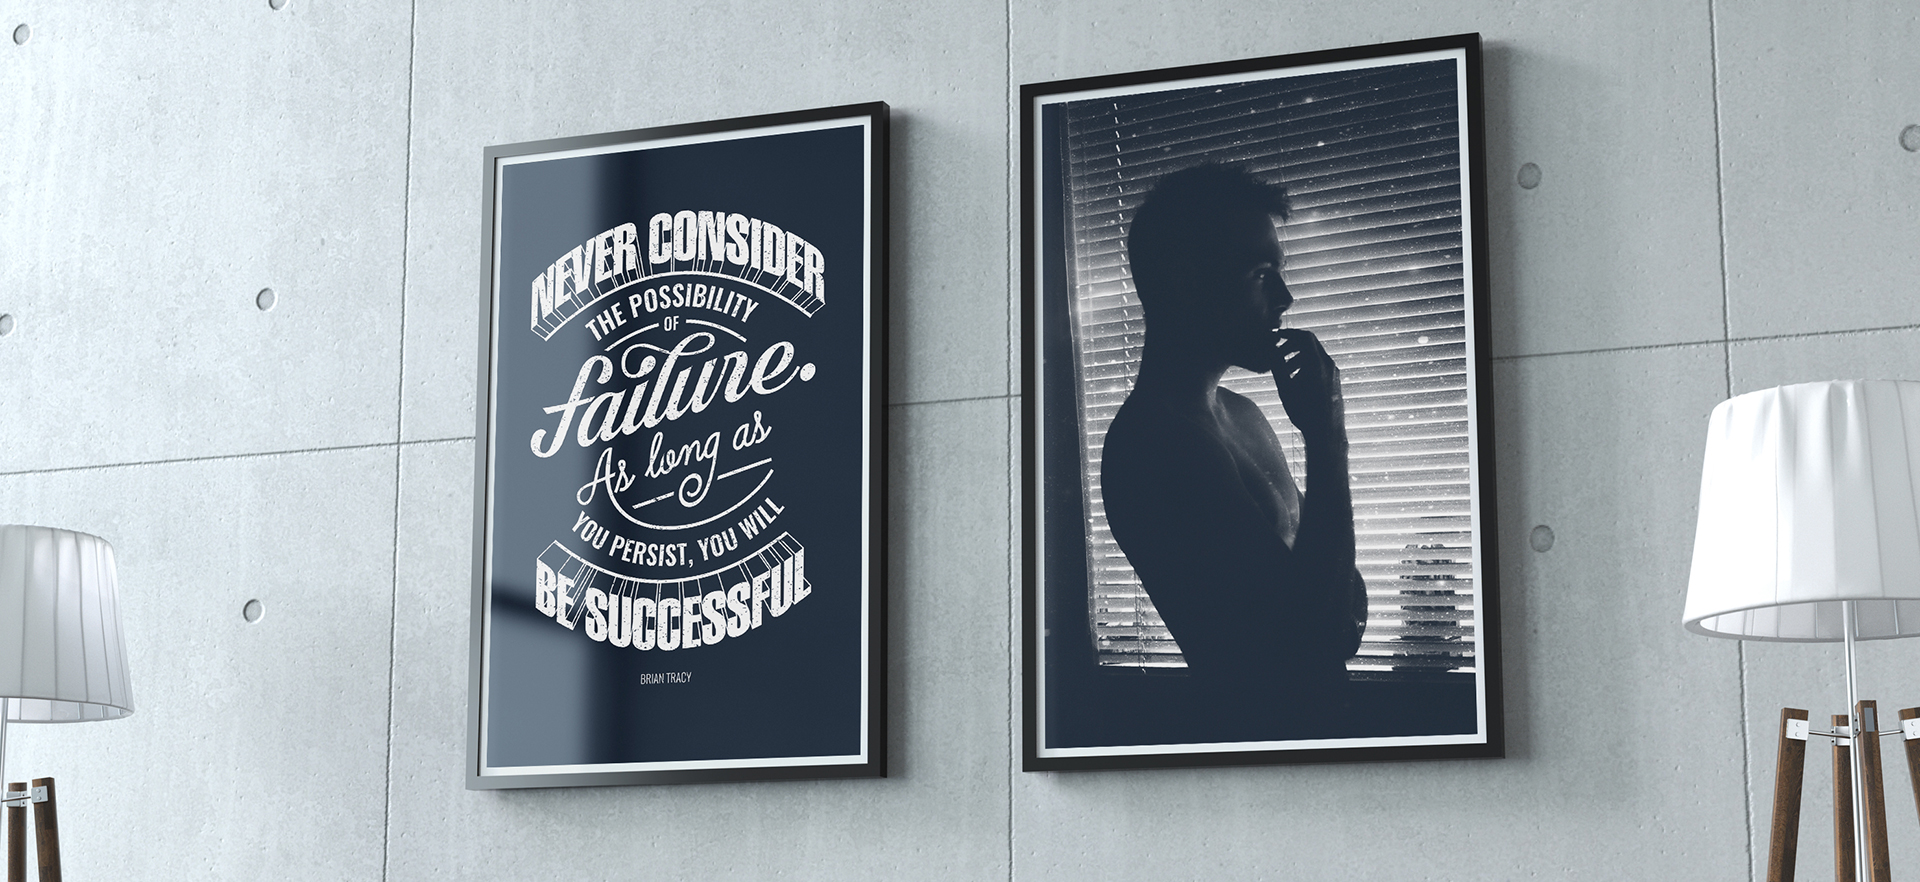 Typographic Poster next to photography photo on an office wall